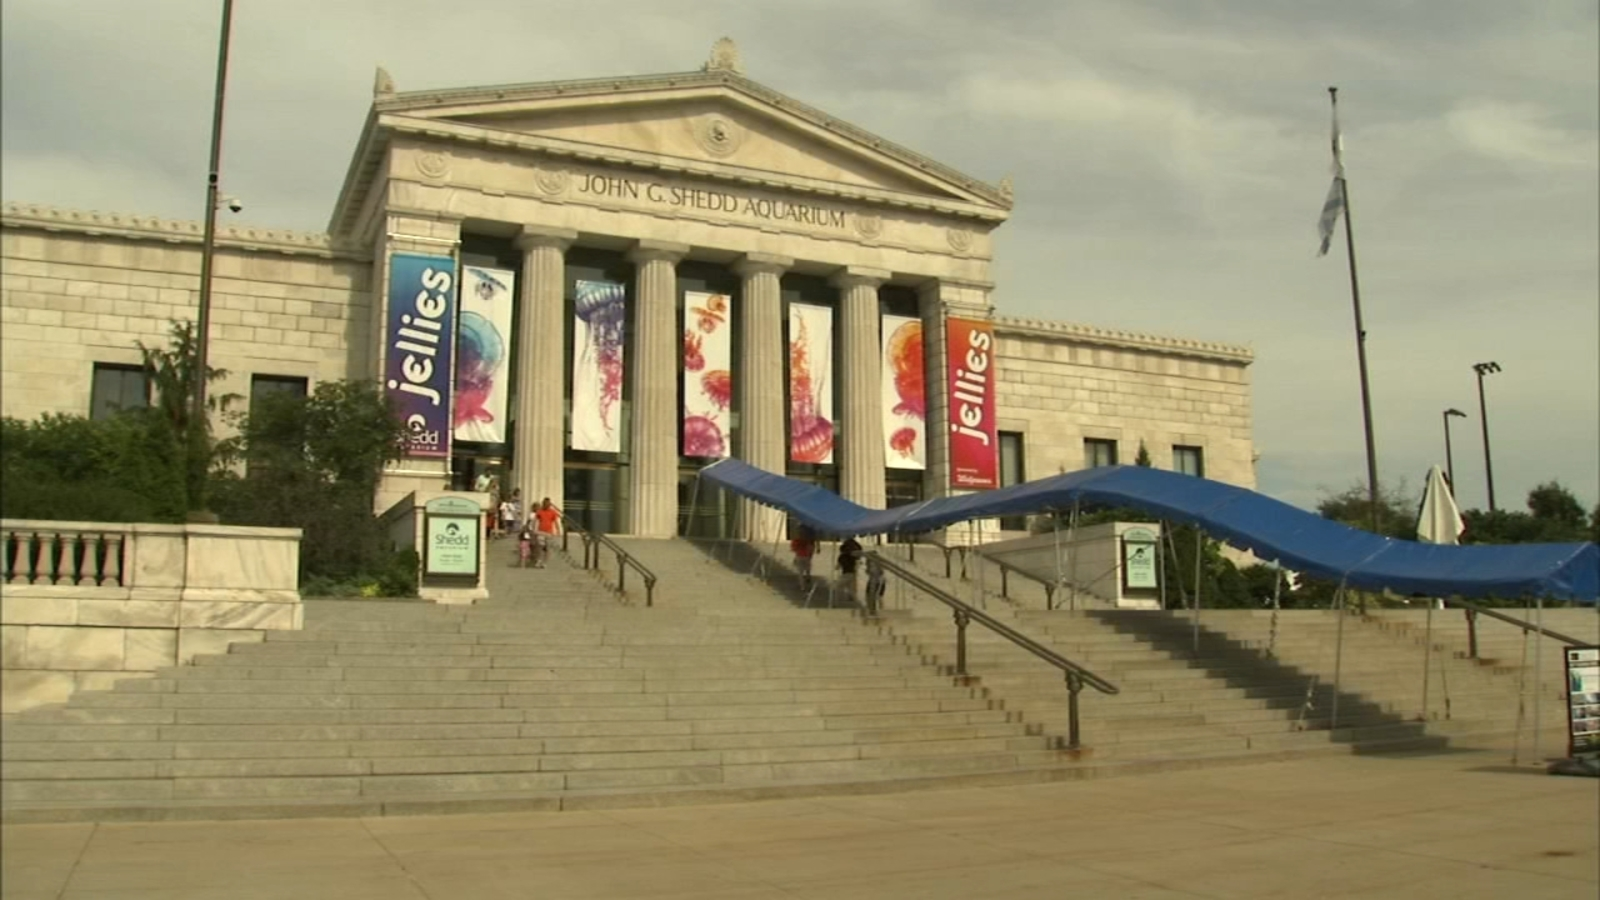 Shedd Aquarium offering free admission to Illinois residents on 12 days in September